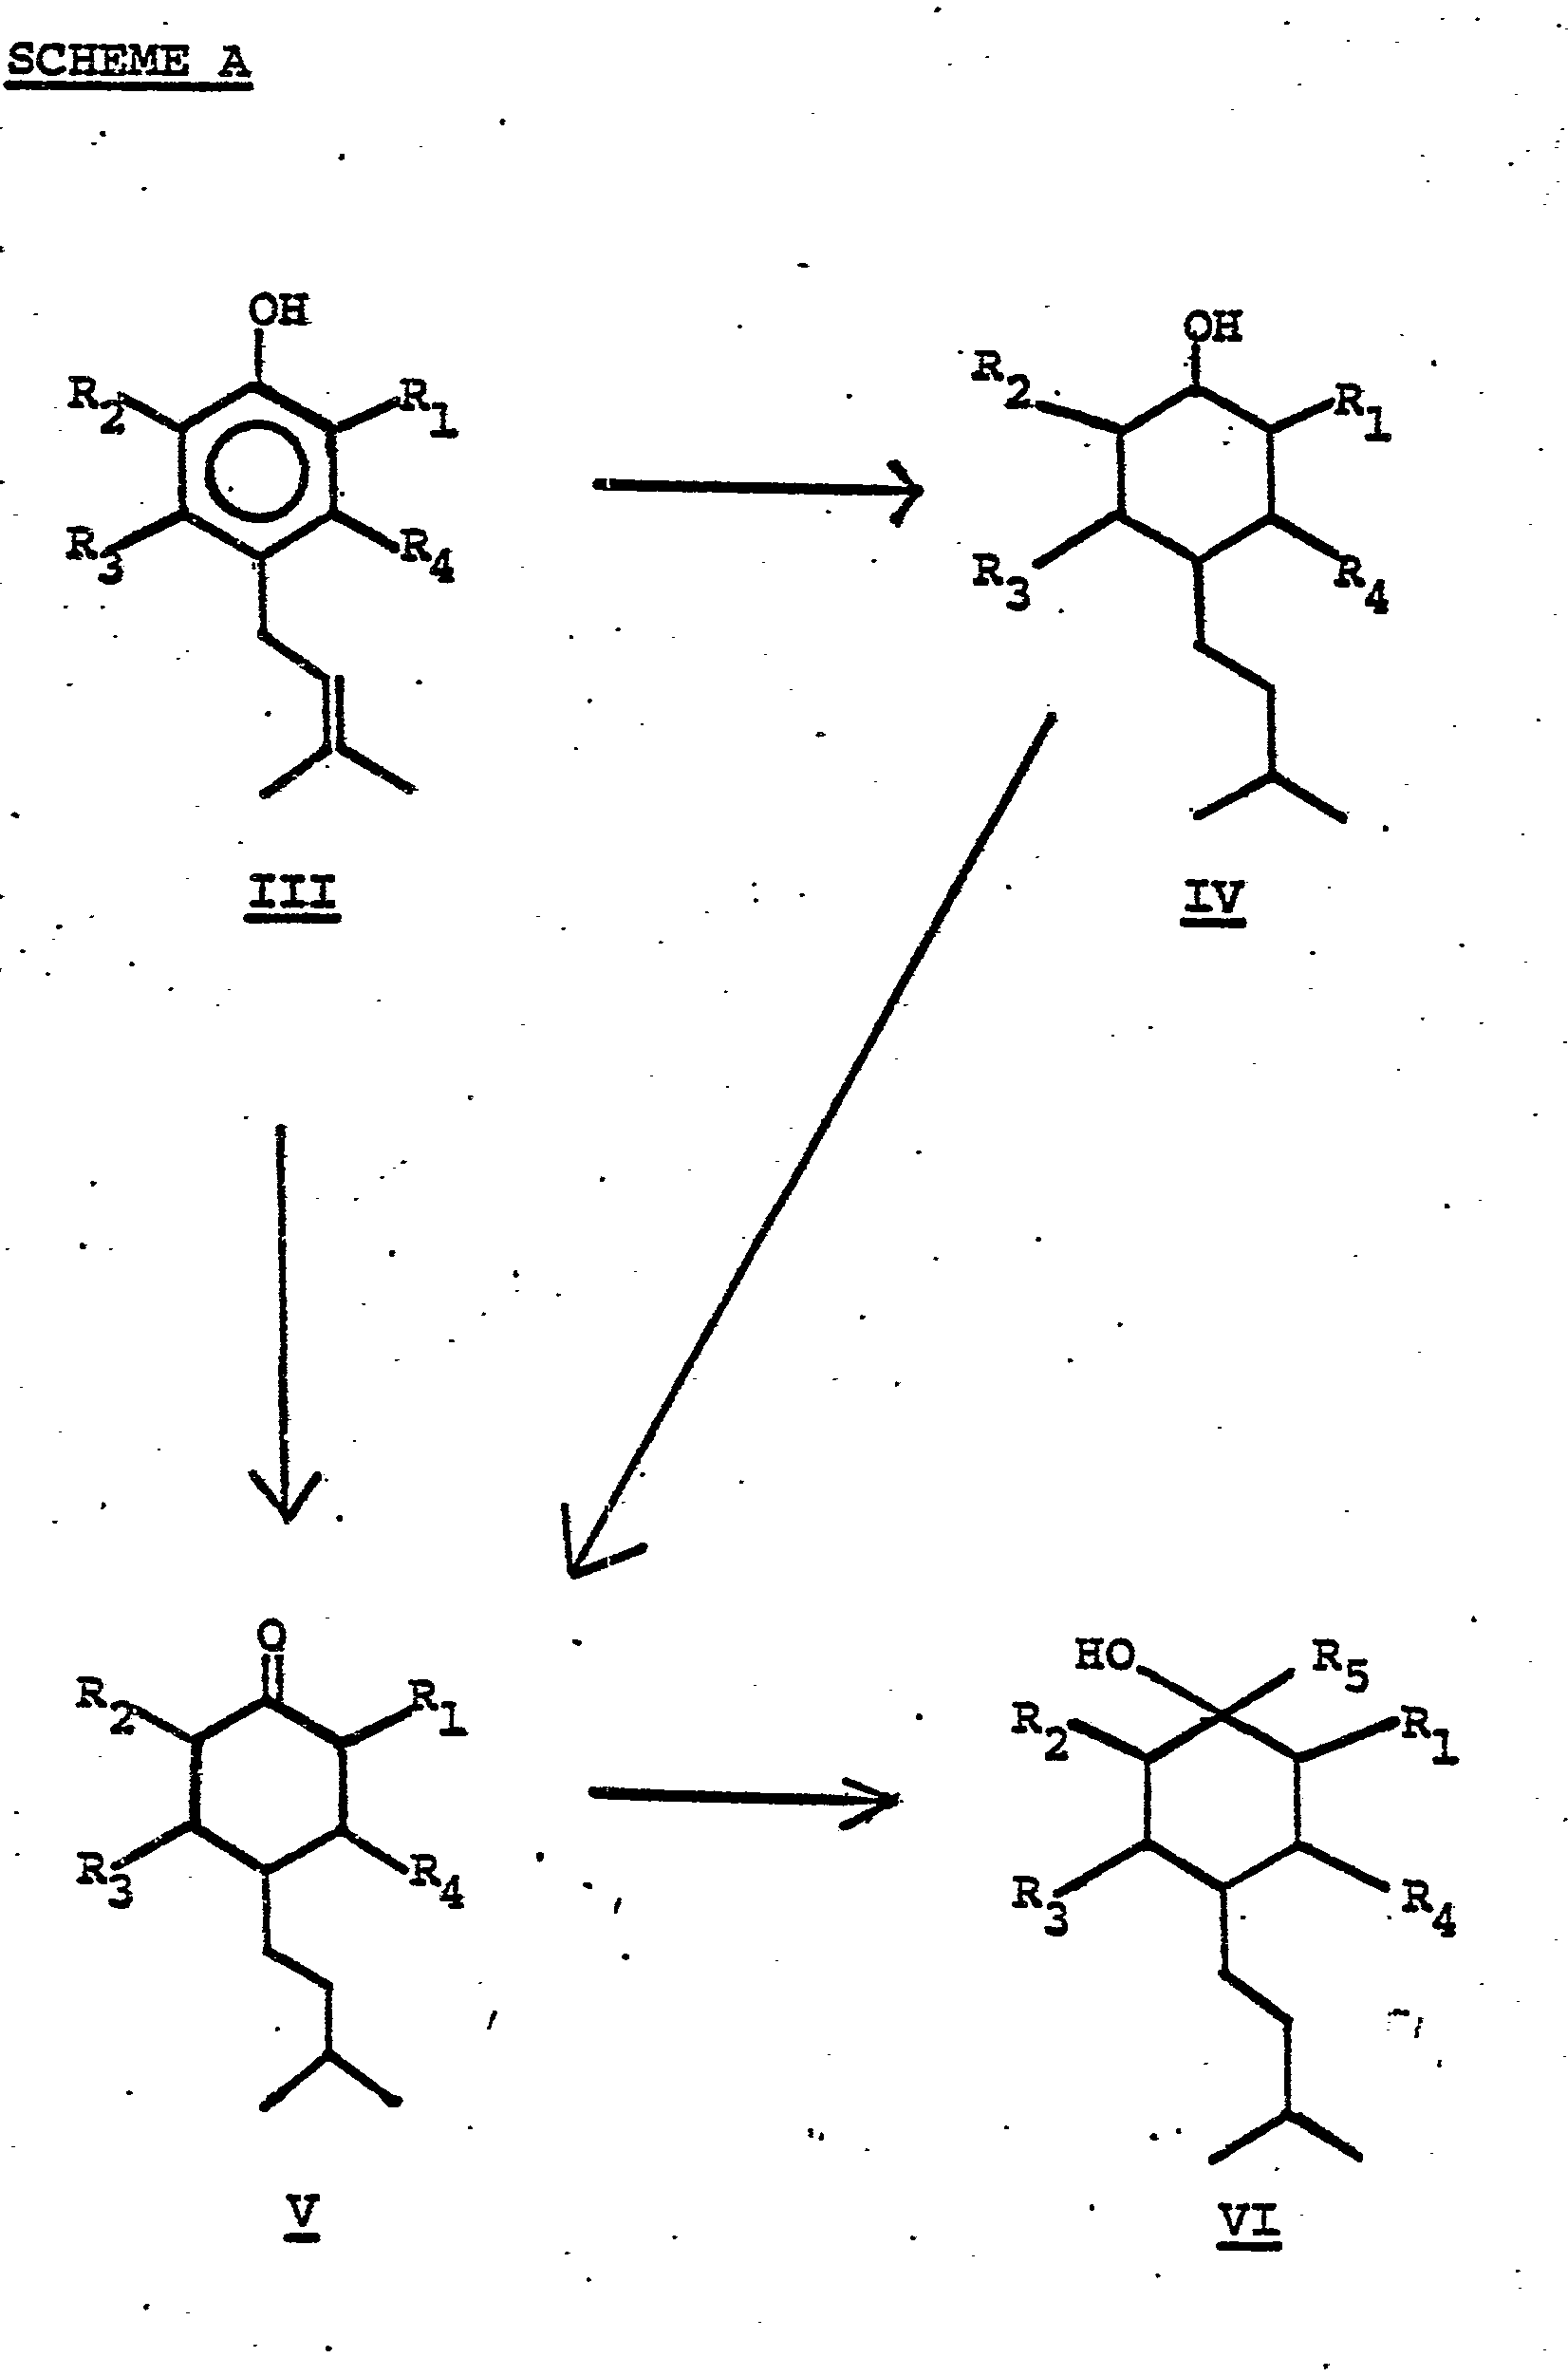 alkenes from alcohols cyclohexene from cyclohexanol Alkenes from alcohols: cyclohexene from cyclohexanol chapter 19 191: preparation of cyclohexene by dehydration of cyclohexanol h 3 po 4 oh theory: acid catalyzed dehydration of alcohols o protonation of the –oh group, followed by elimination 2 o & 3 o r-oh: e1 mechanism 1 o r-oh: e2 mechanism reaction mechanism: oh 2 h h h h o h h + h 2 po 4.